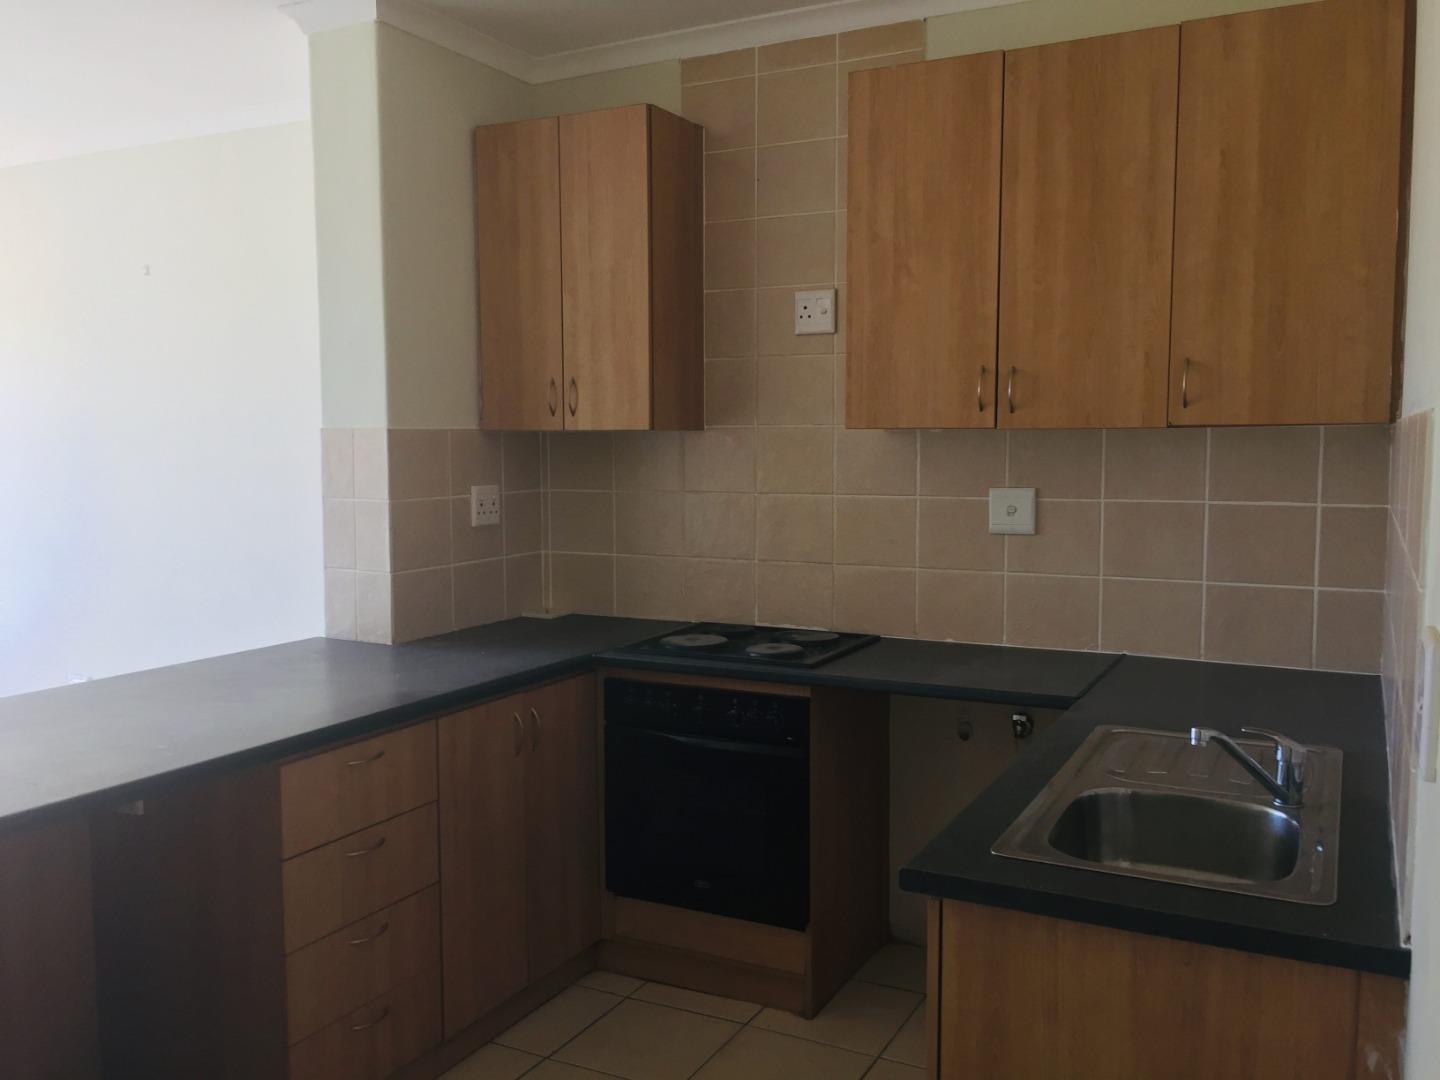 2 Bedroom  Apartment for Sale in Noordhoek - Western Cape